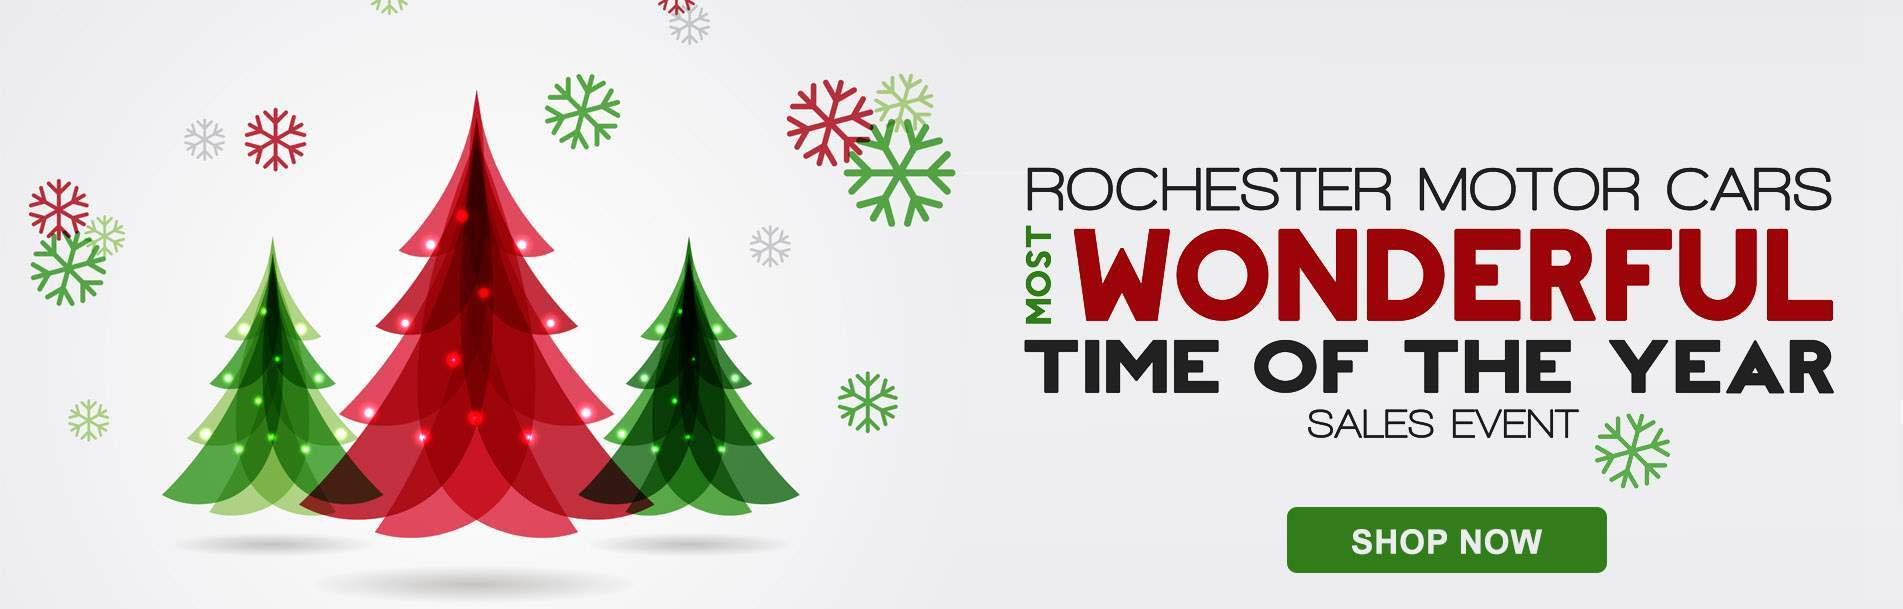 Rochester Toyota's Most Wonderful Time of the Year Event